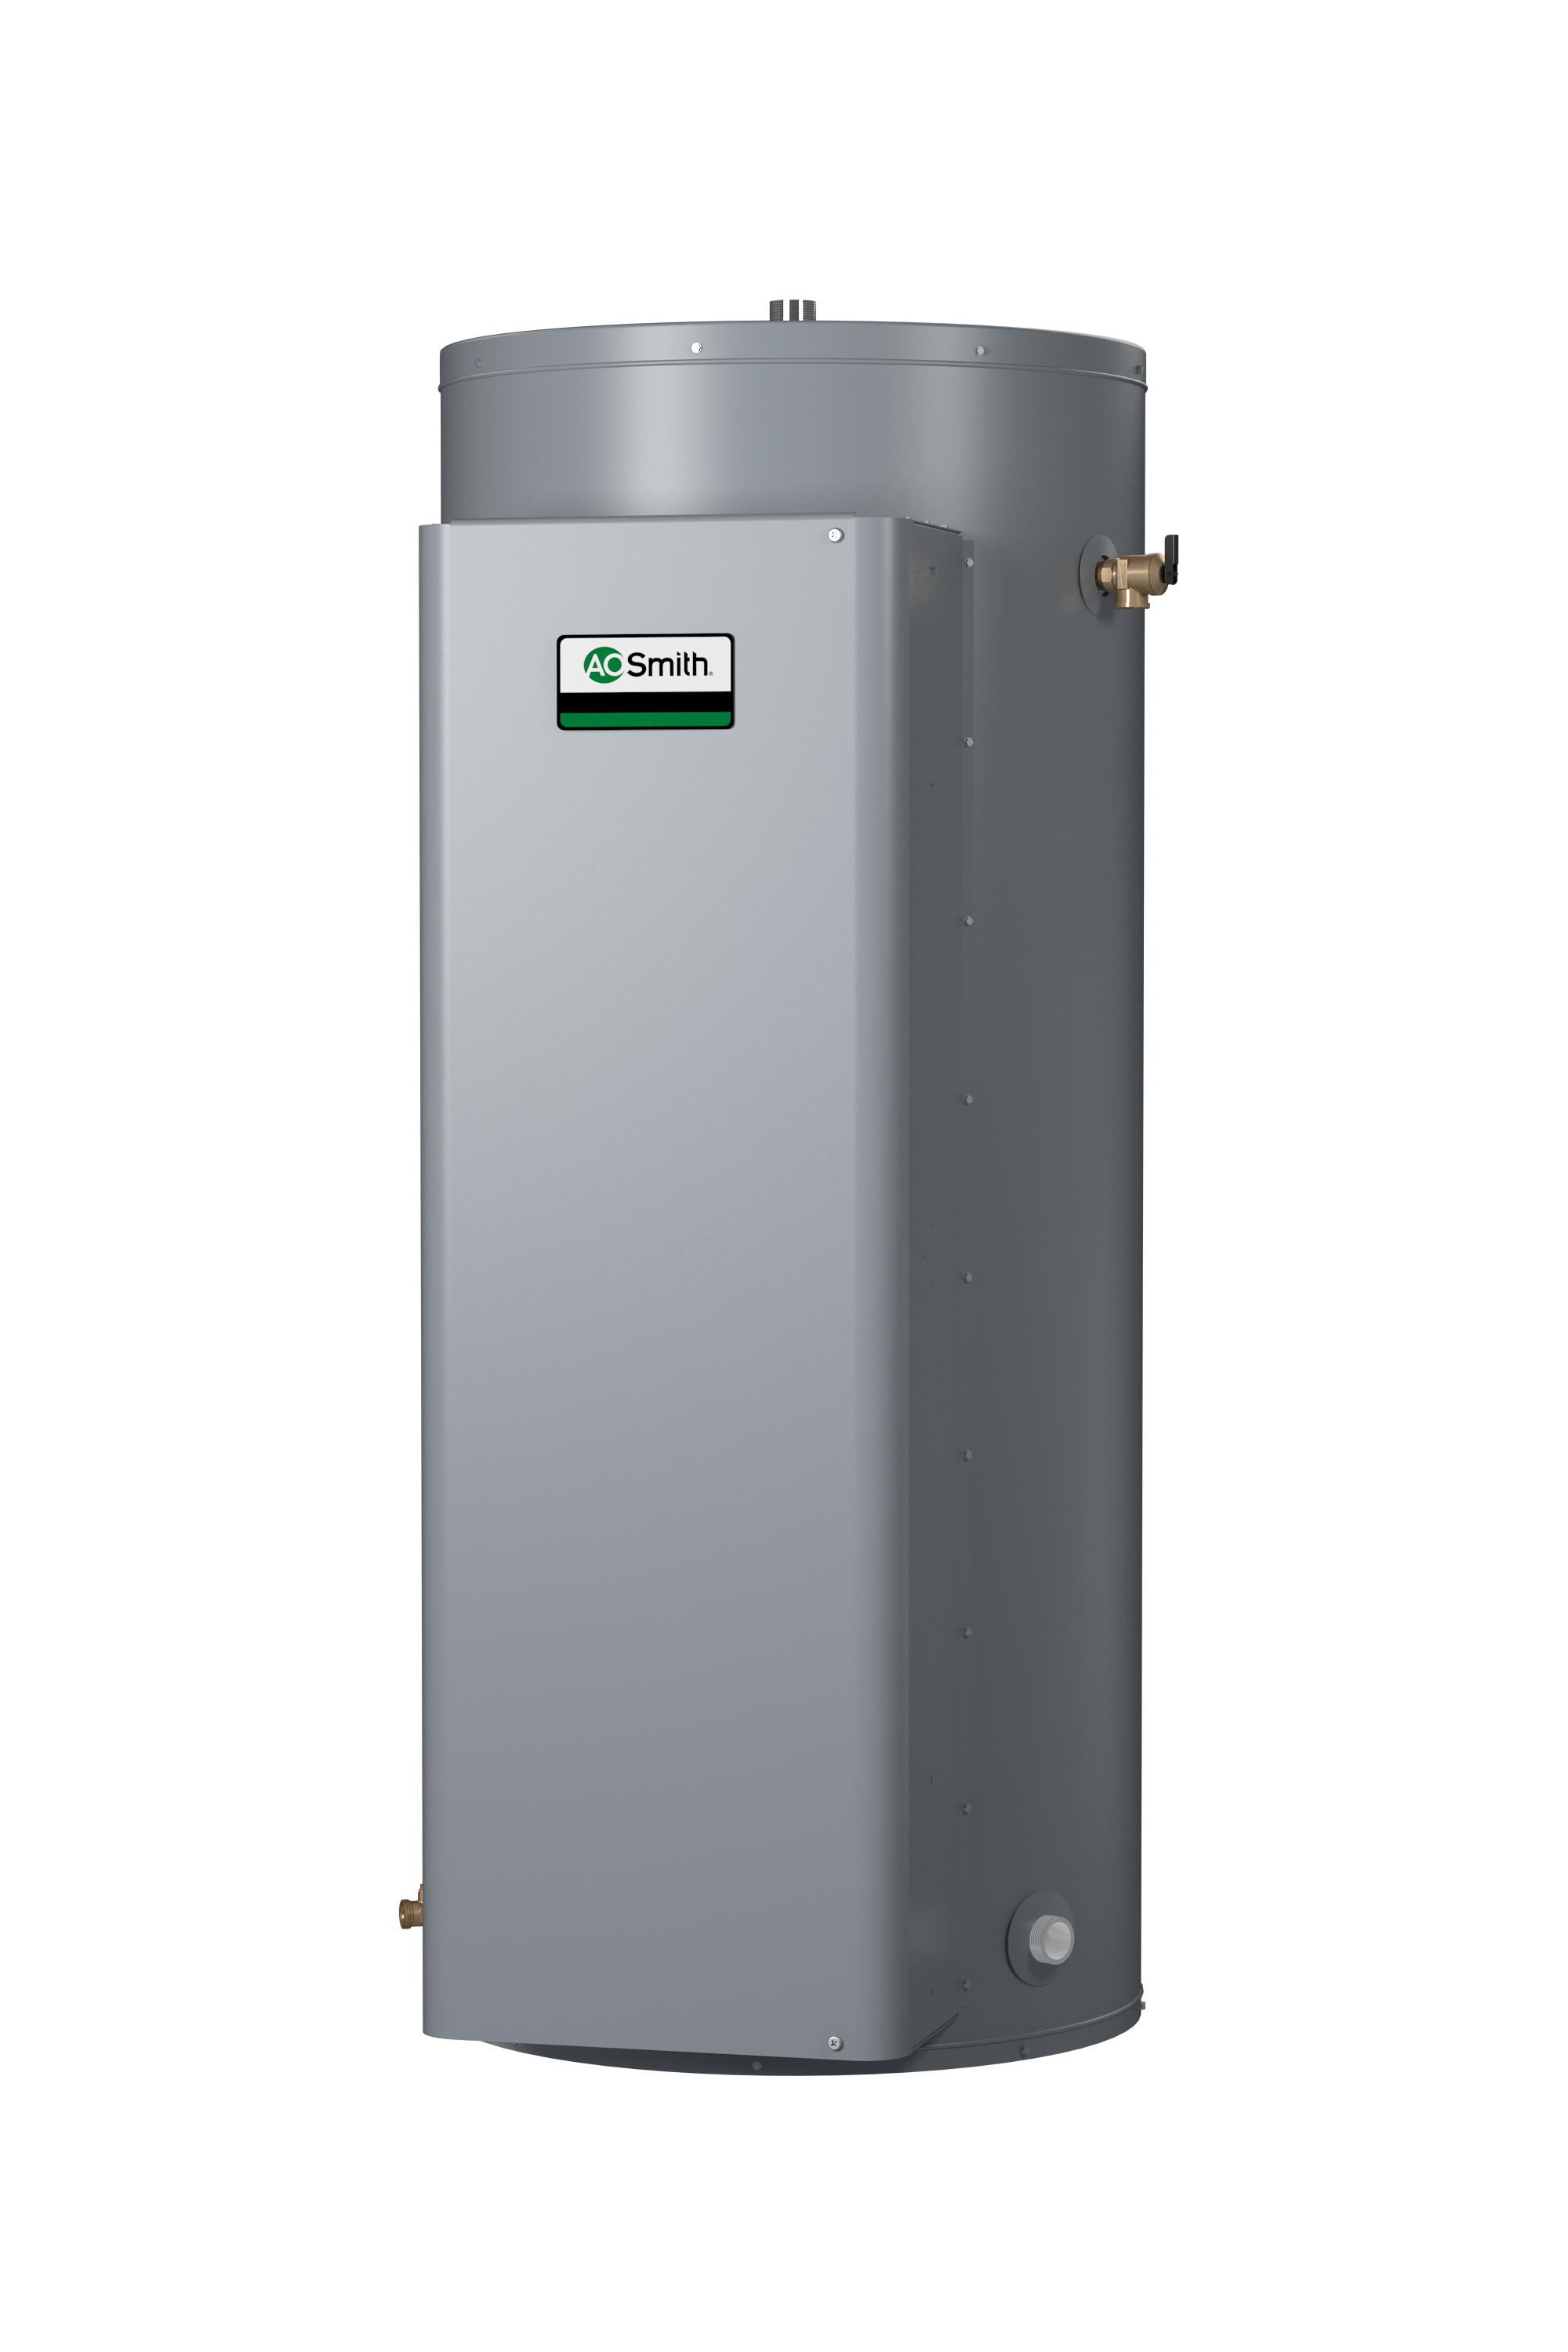 AO SMITH DRE-120-12, 119 GALLONS, 12.0KW, 240 VOLT, 28.9 AMPS, 3 PHASE, 3 ELEMENT, COMMERCIAL ELECTRIC WATER HEATER, GOLD SERIES